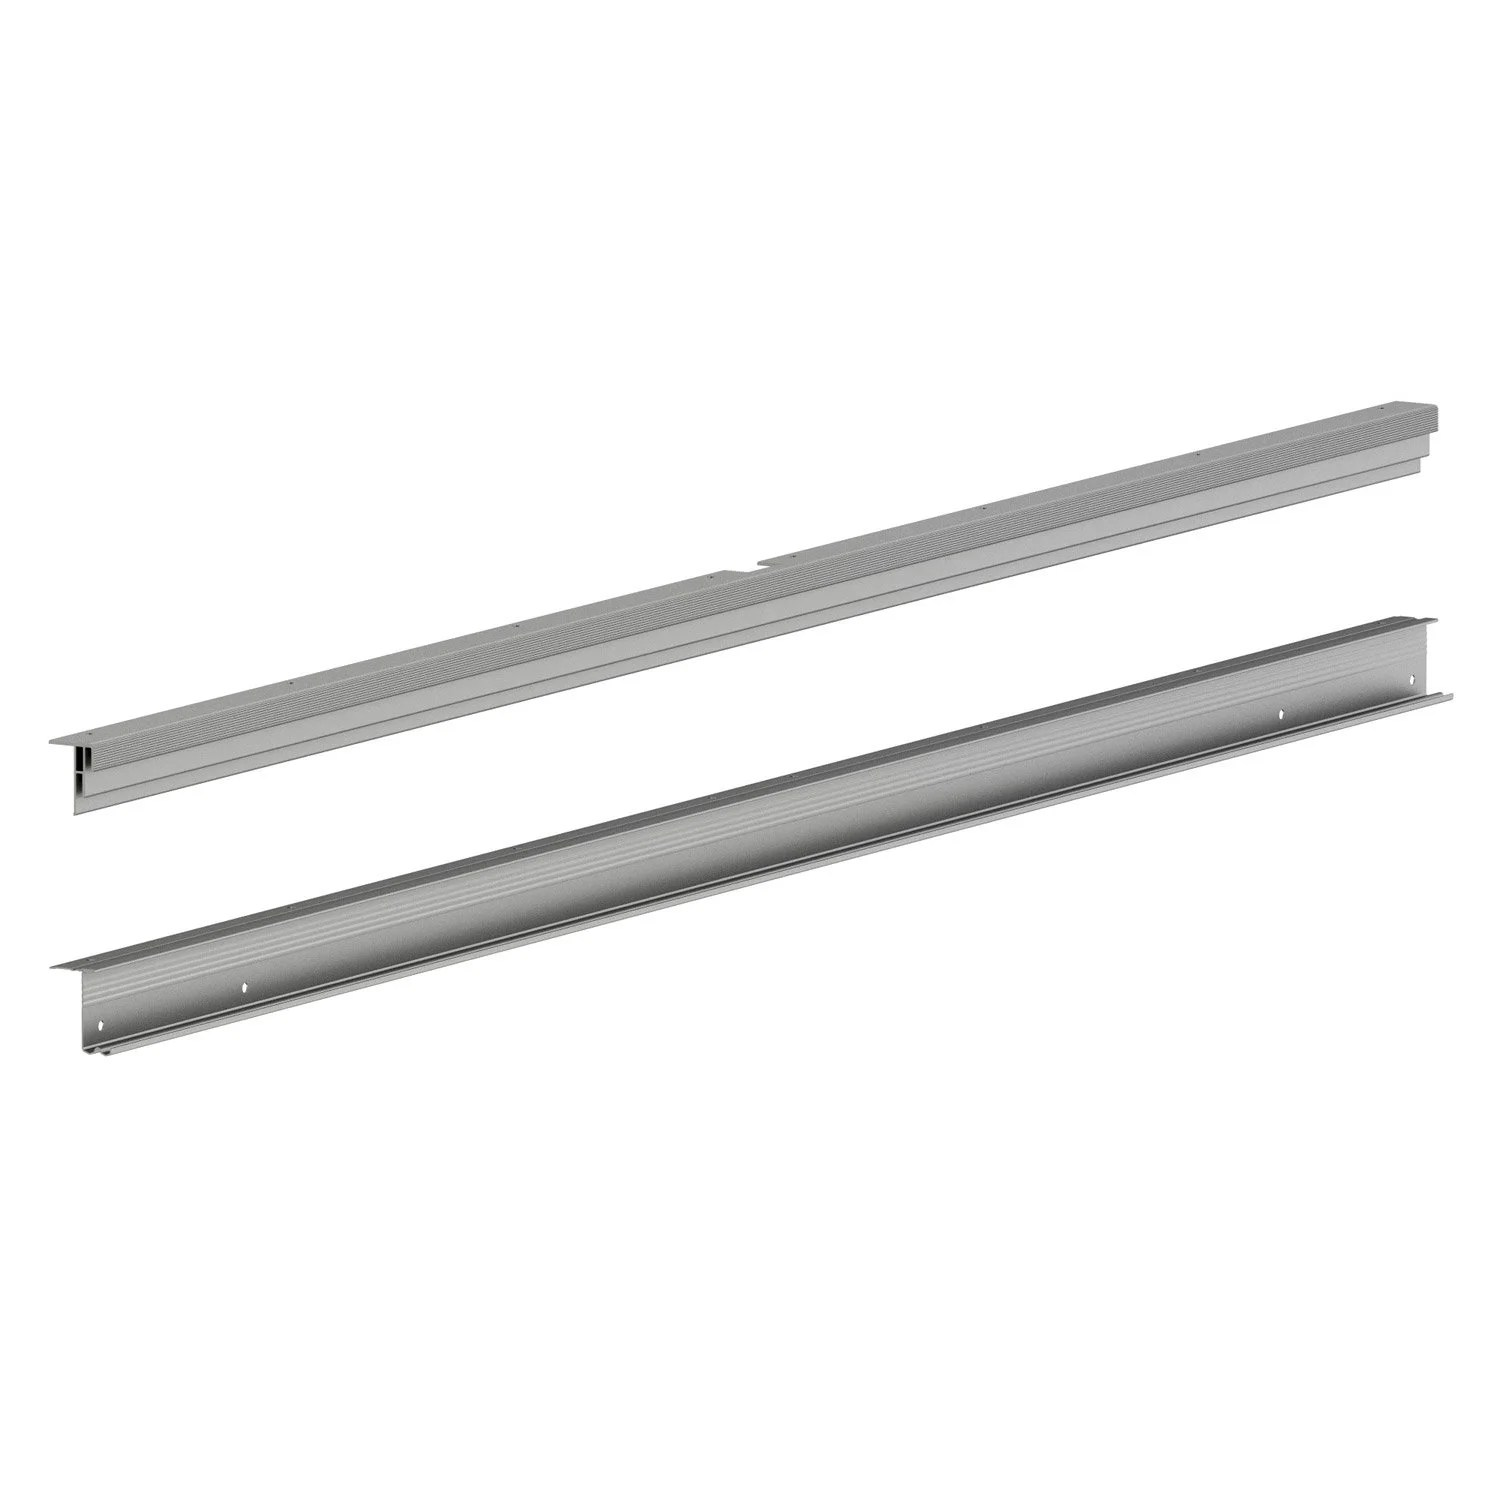 Leroy Merlin Rail Rail Coulissant Pour Porte Spaceo Home 10 X 240 X 15 Cm